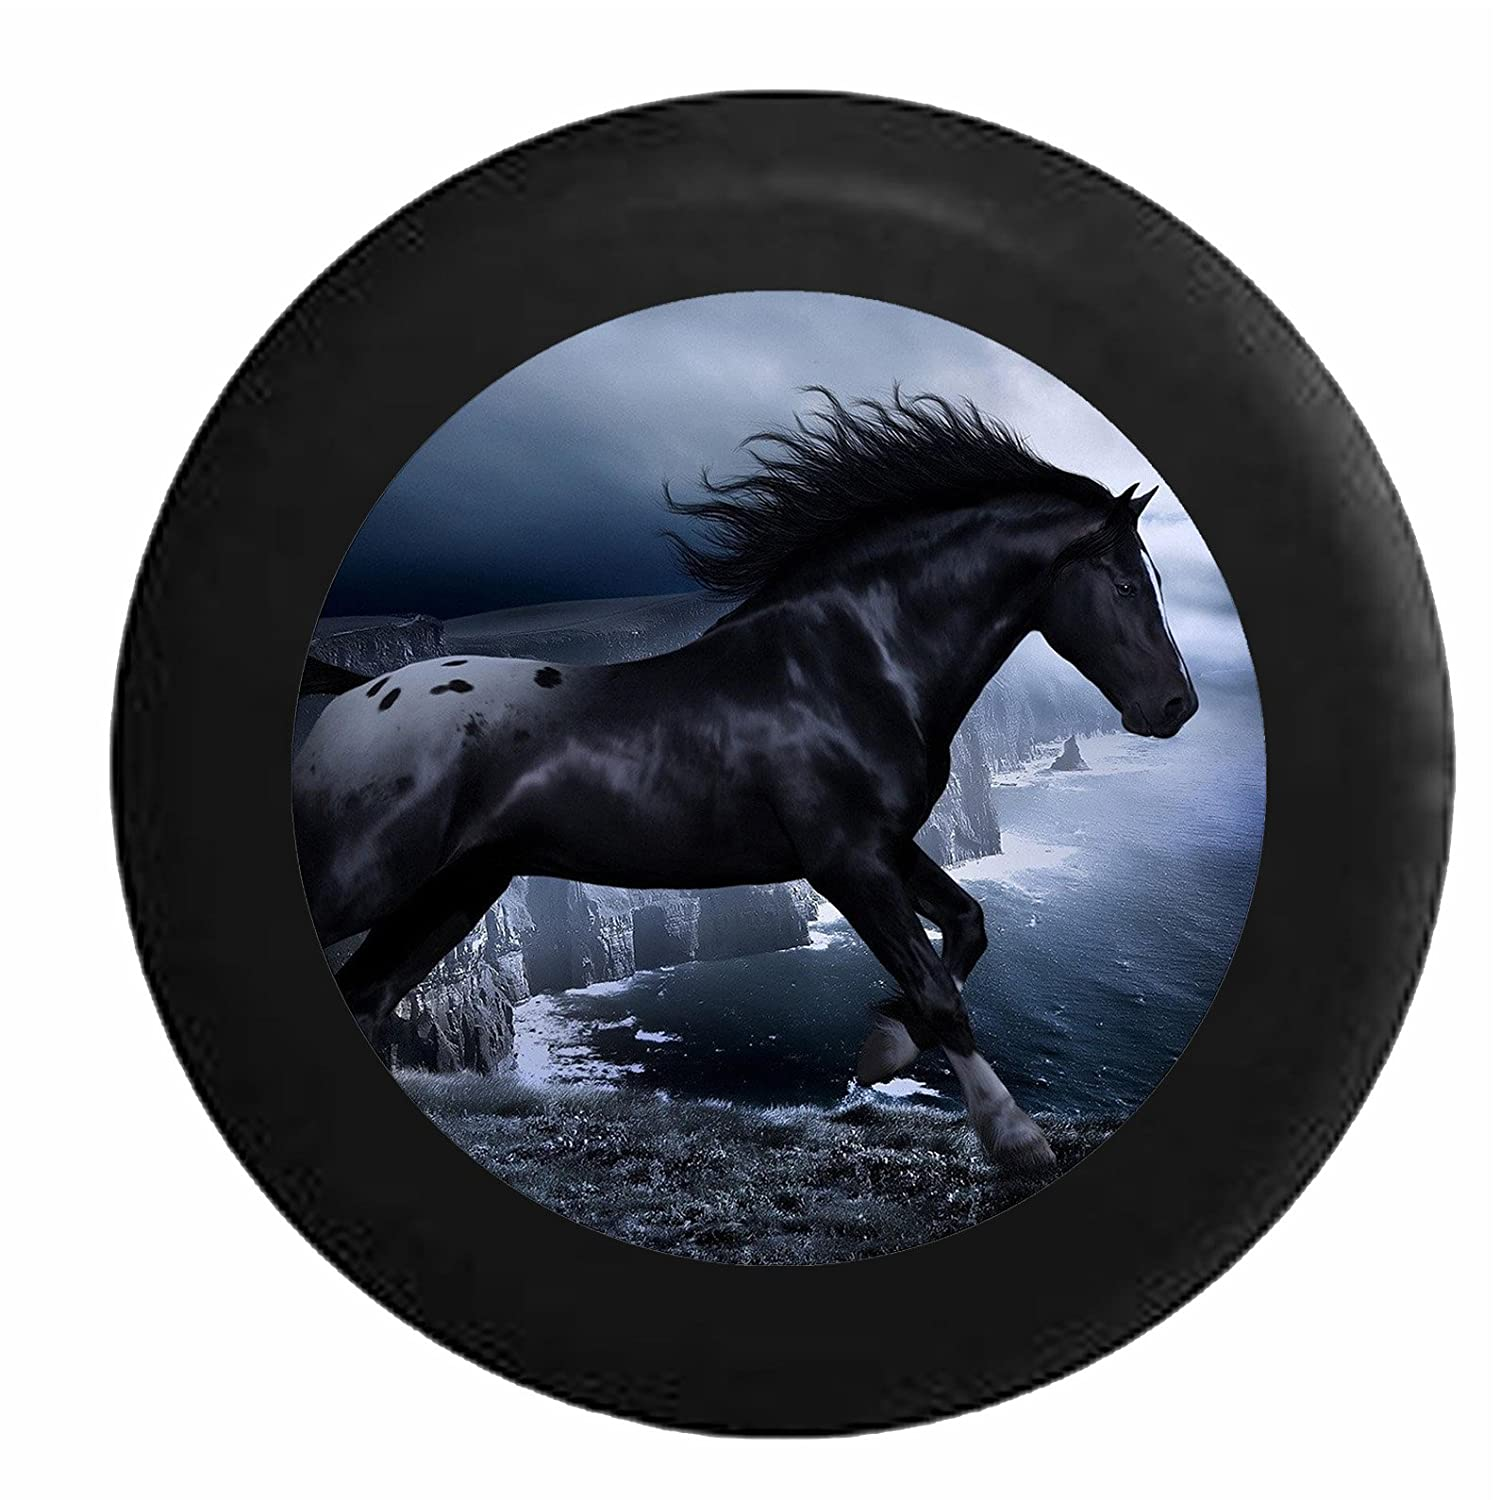 Full Color Stallion Running Free Overlooking Ocean Cliffs Jeep RV Camper Spare Tire Cover Black 33 in Pike Outdoors